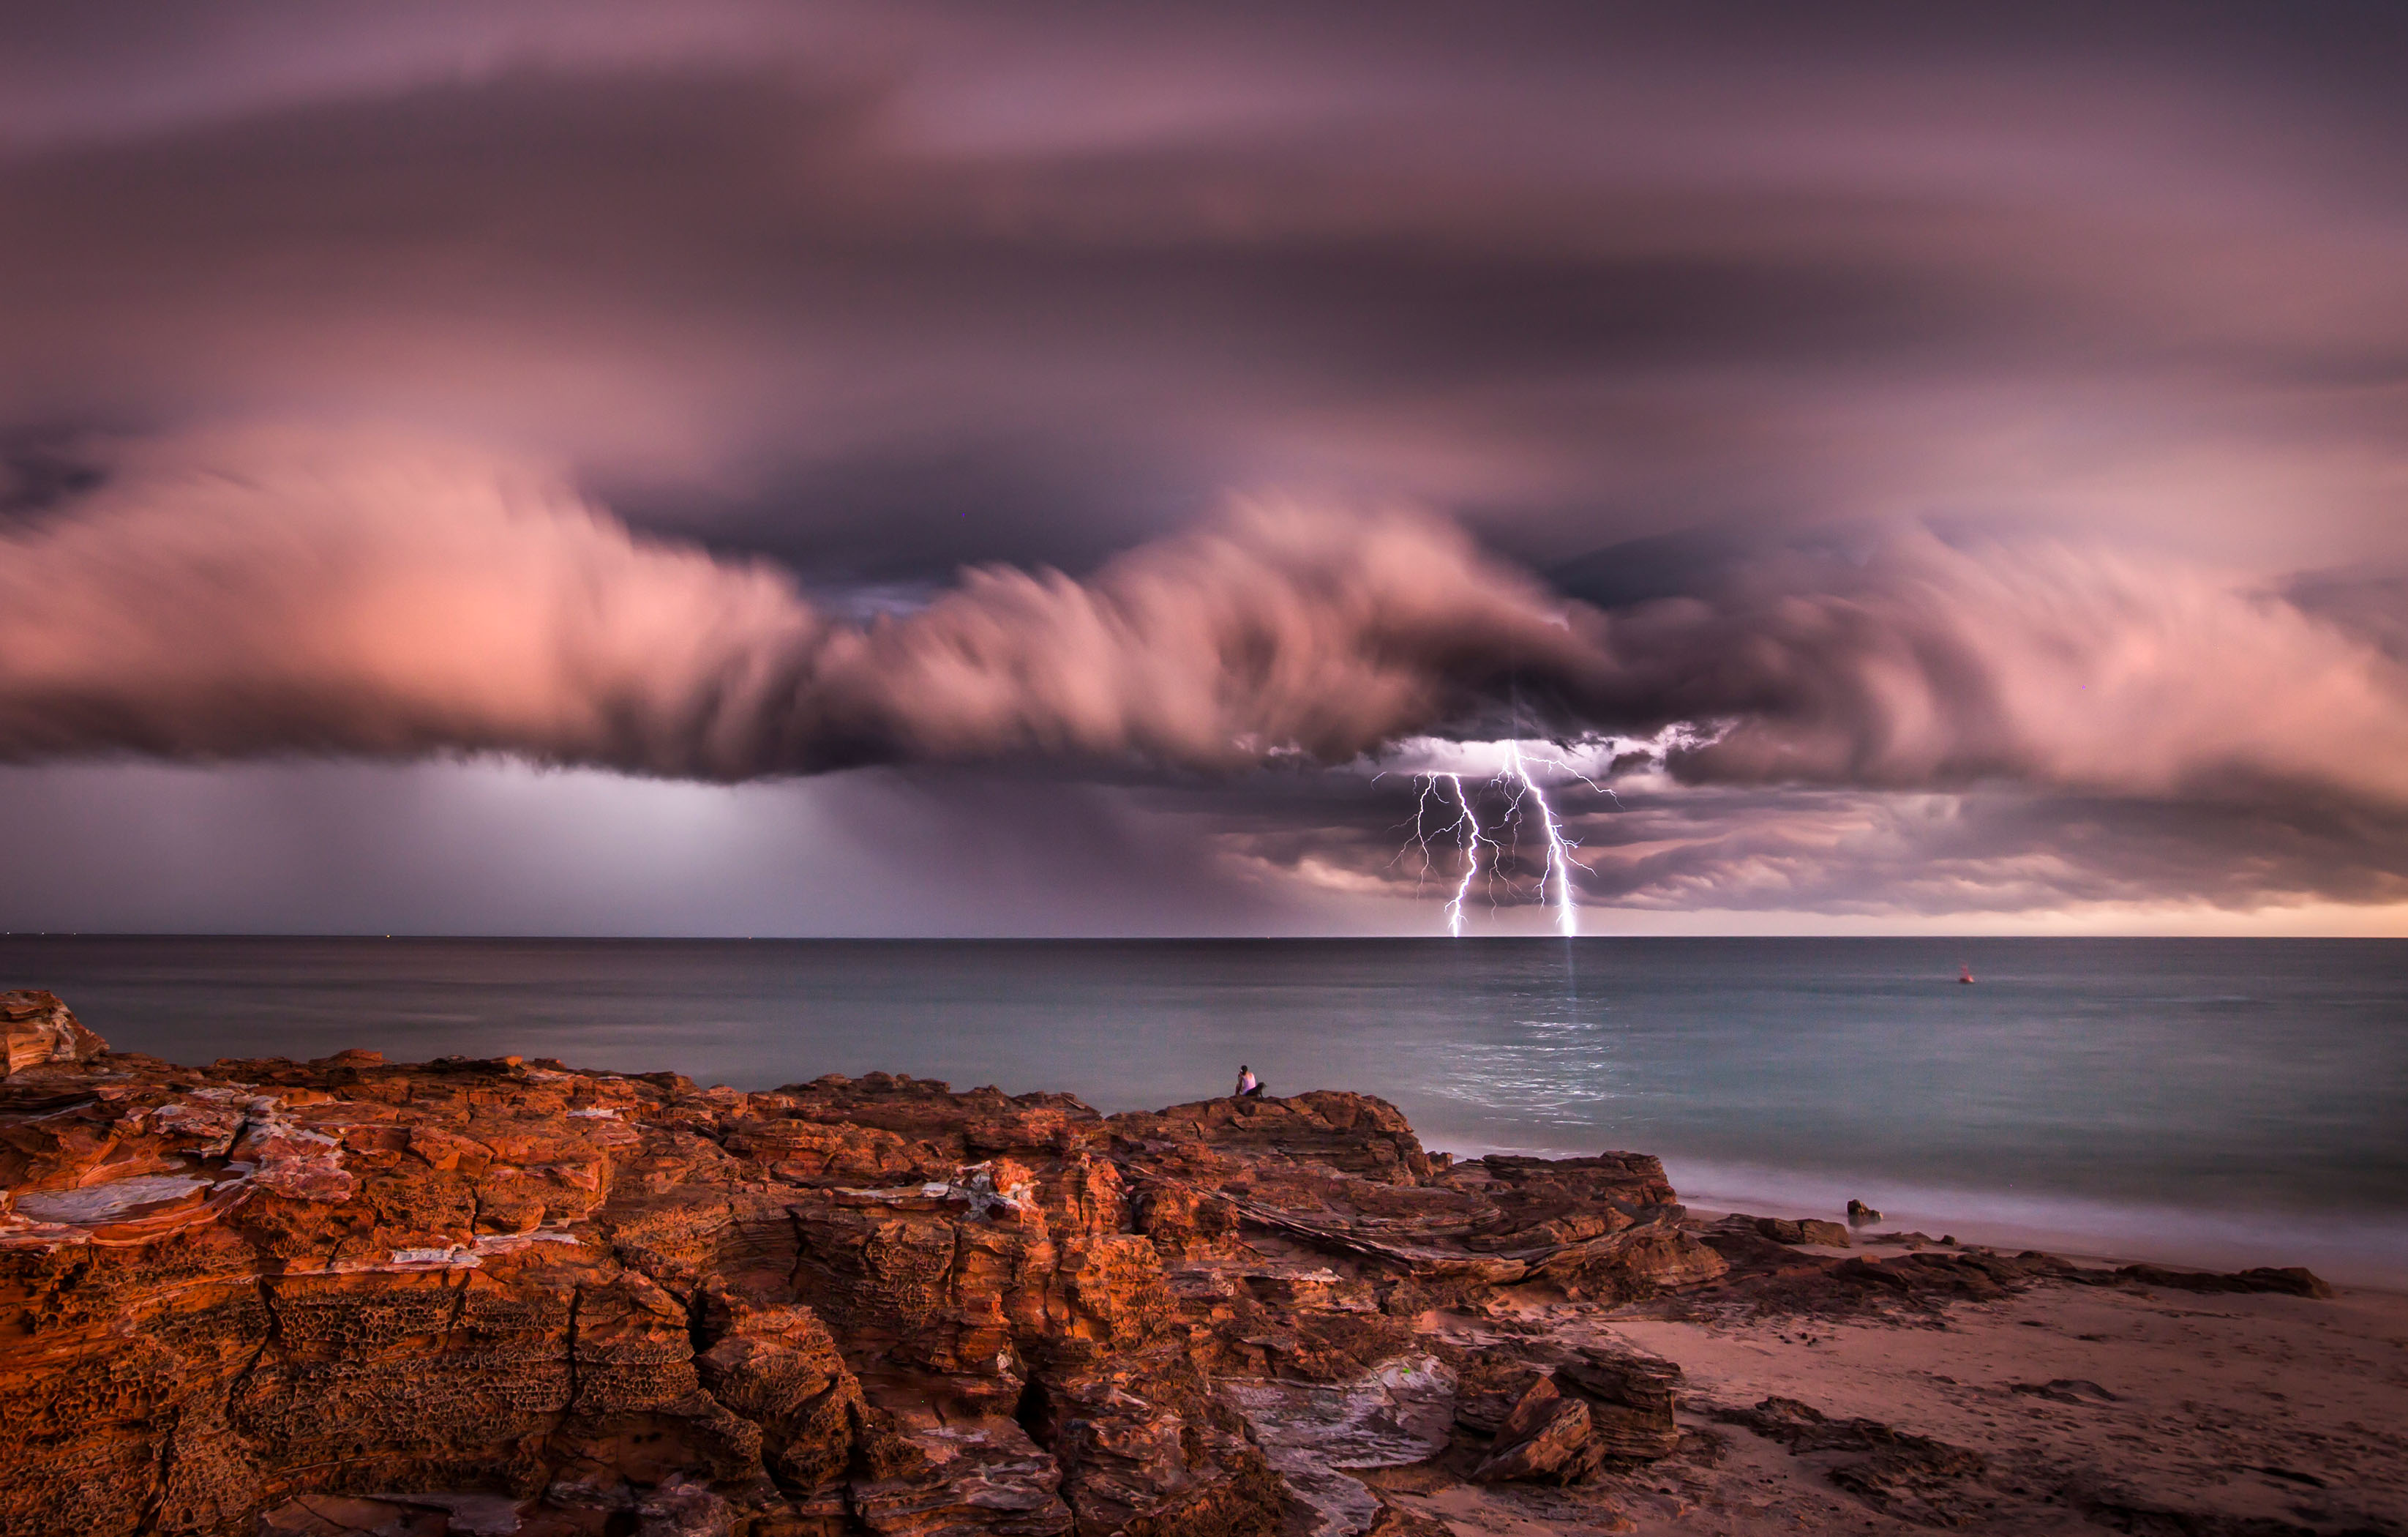 Storm Watching